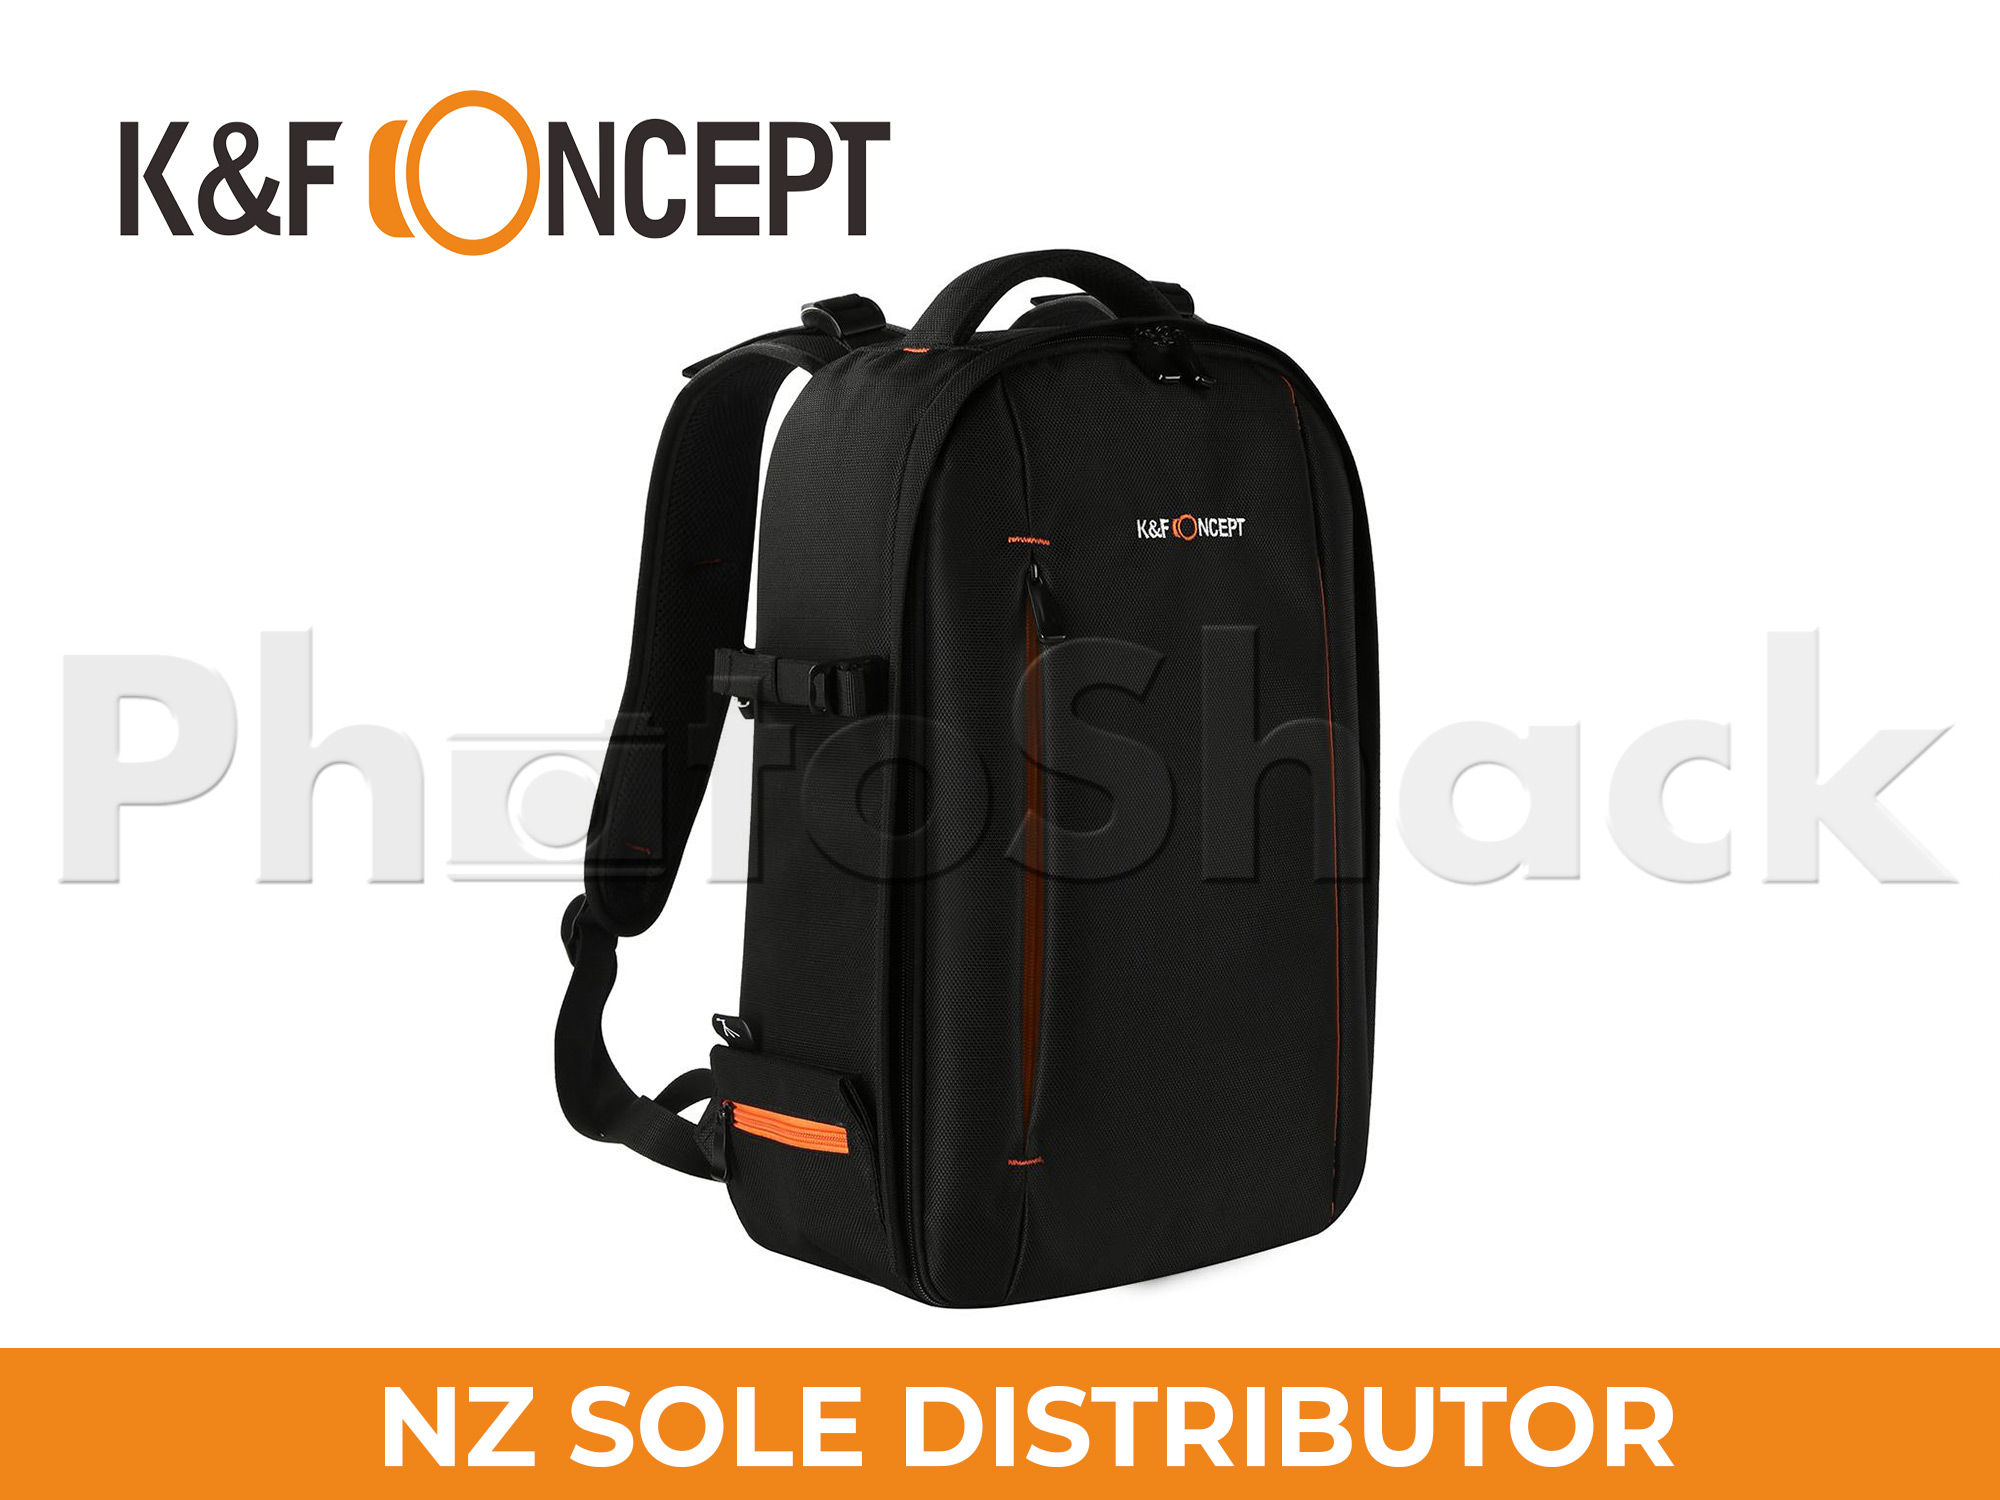 DSLR Large Multifunctional Camera Backpack Bag 37  - K&F Concept